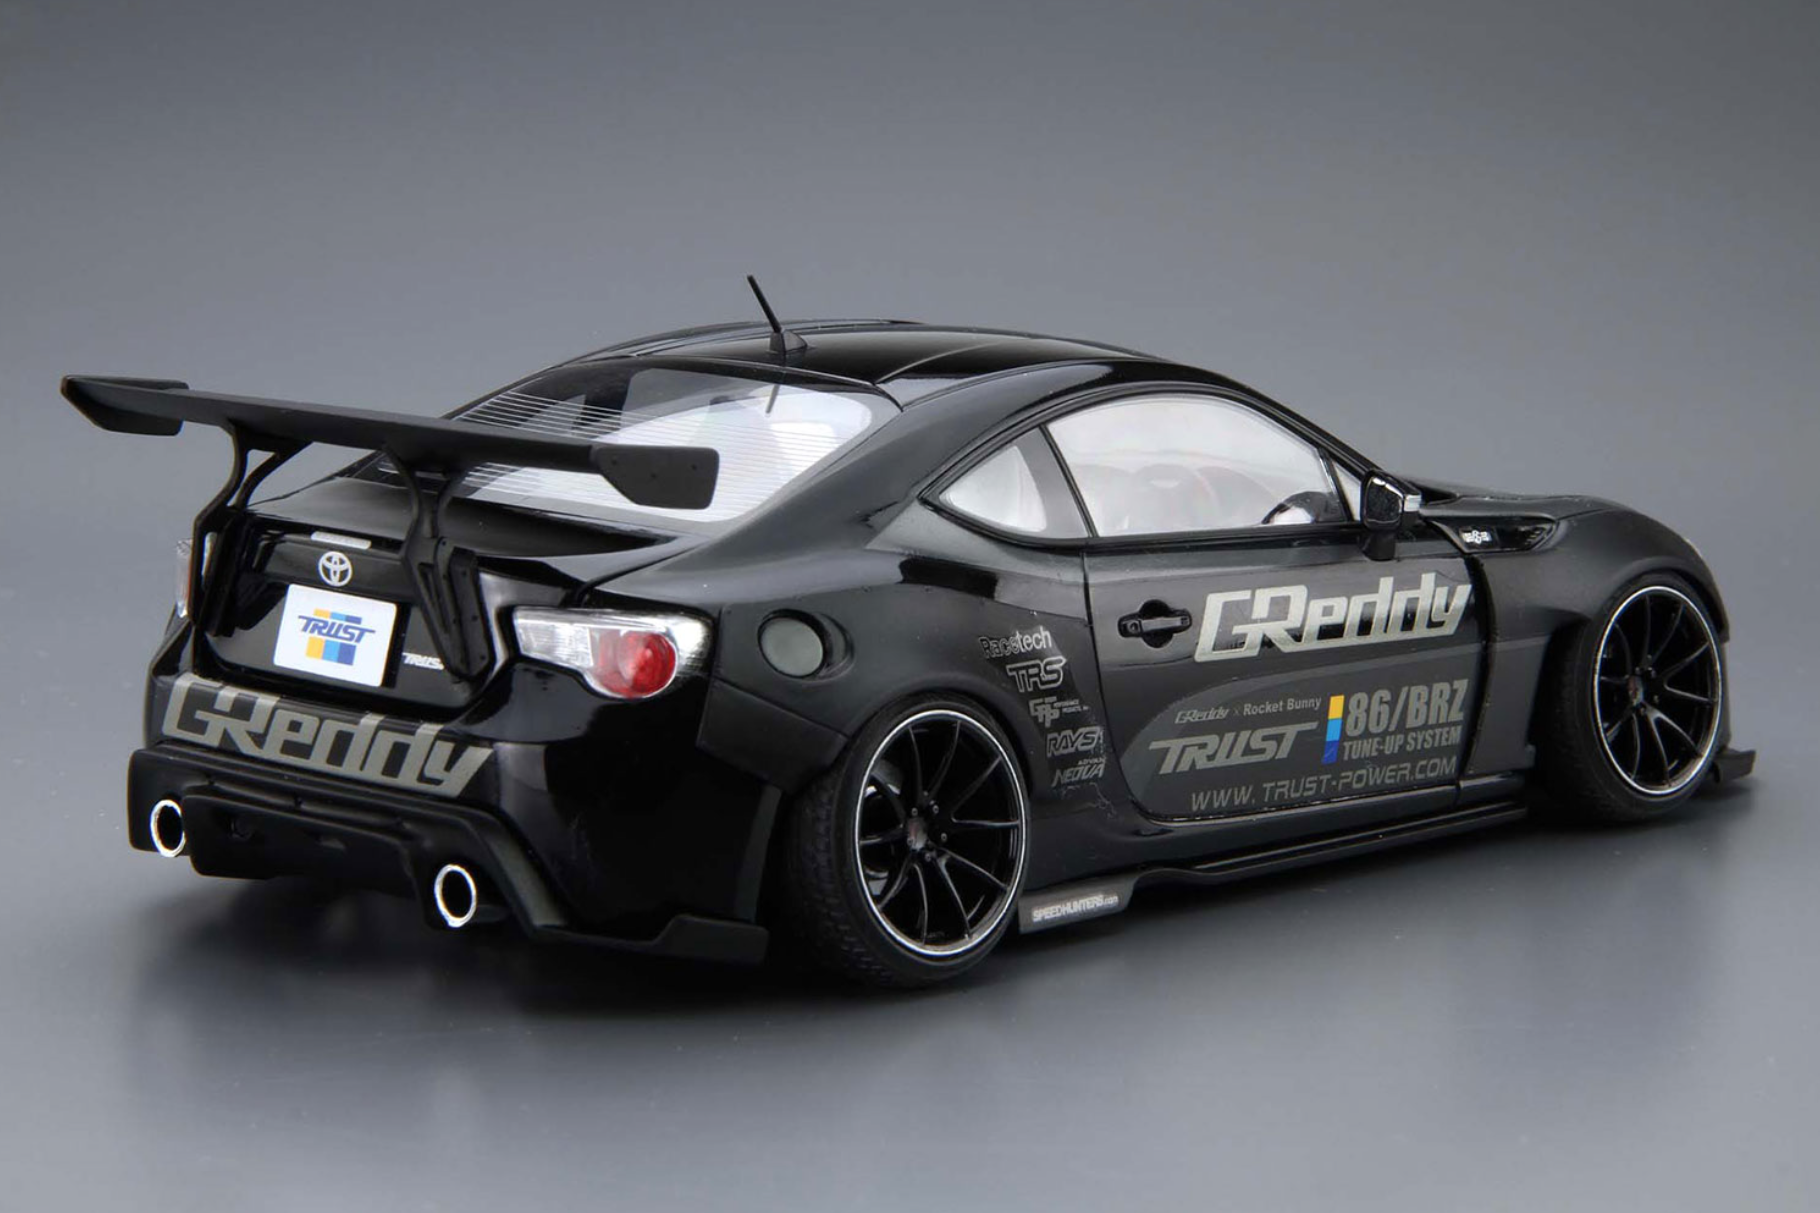 1 24 scale greddy rocket bunny volk racing toyota gt86. Black Bedroom Furniture Sets. Home Design Ideas